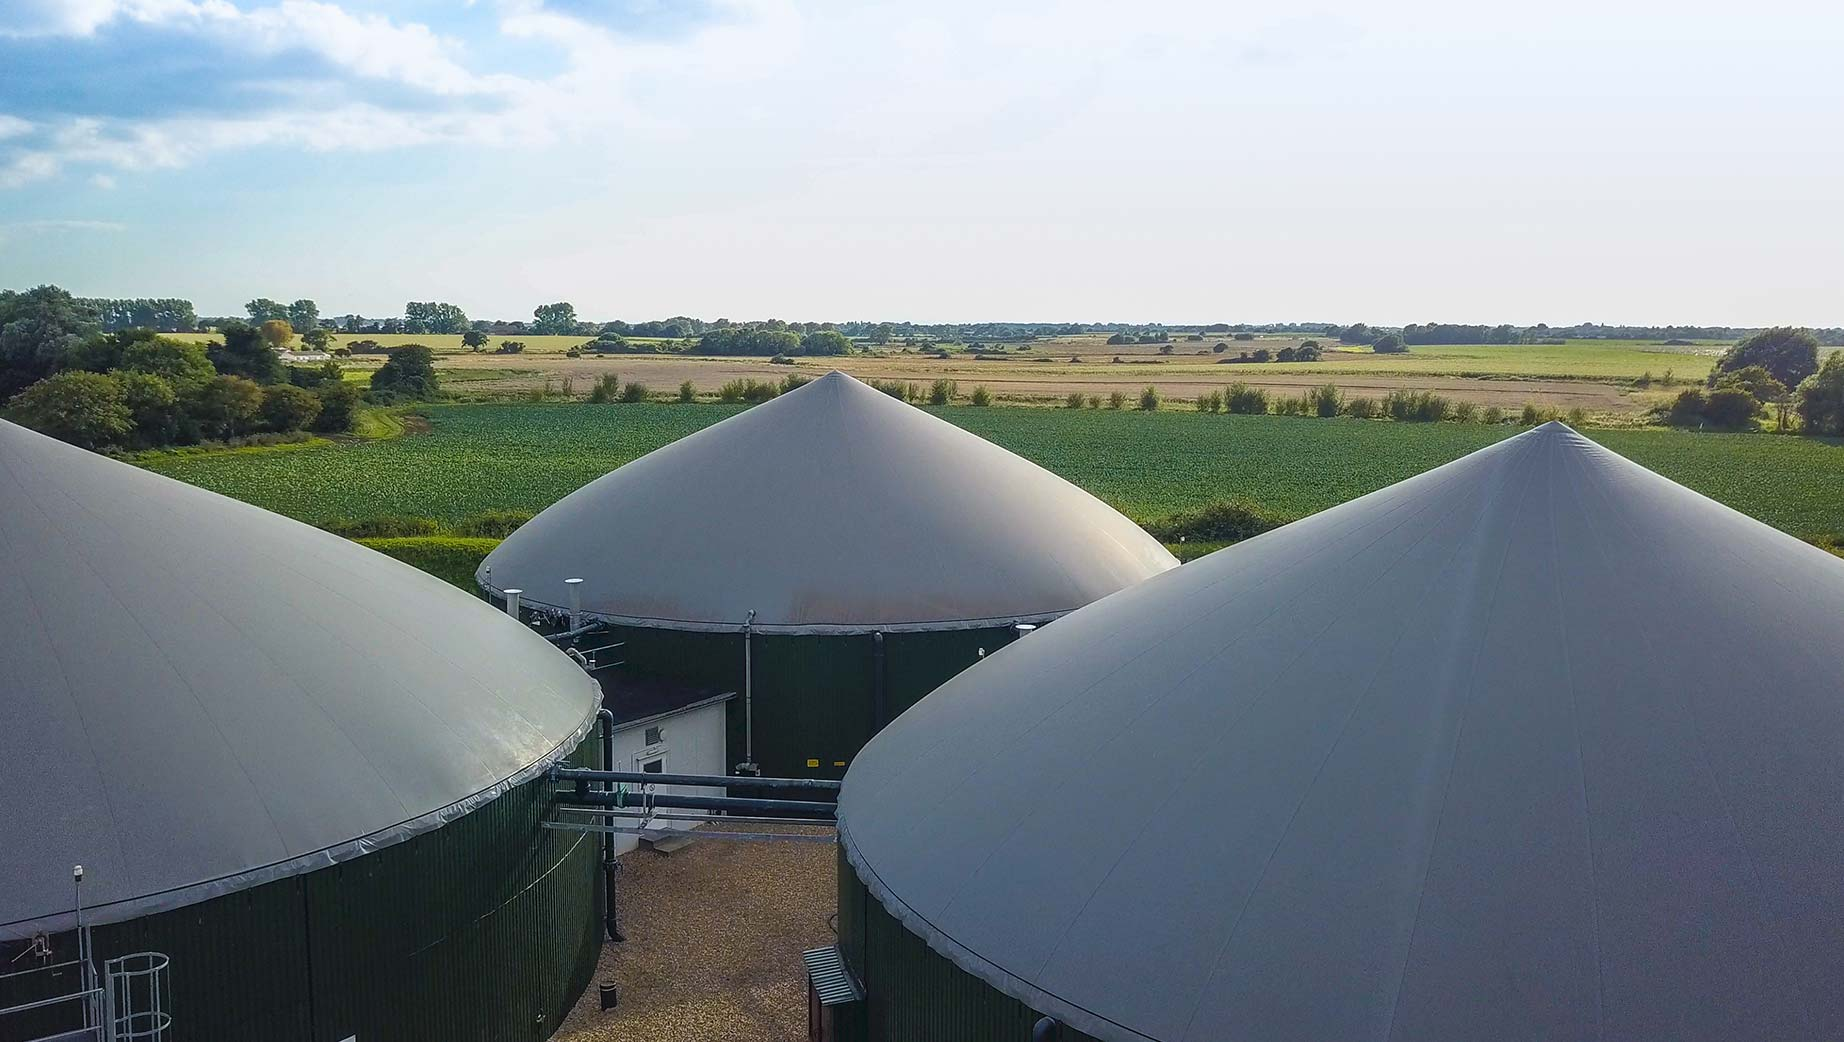 Photograph of the Barfoots Anaerobic Digesters